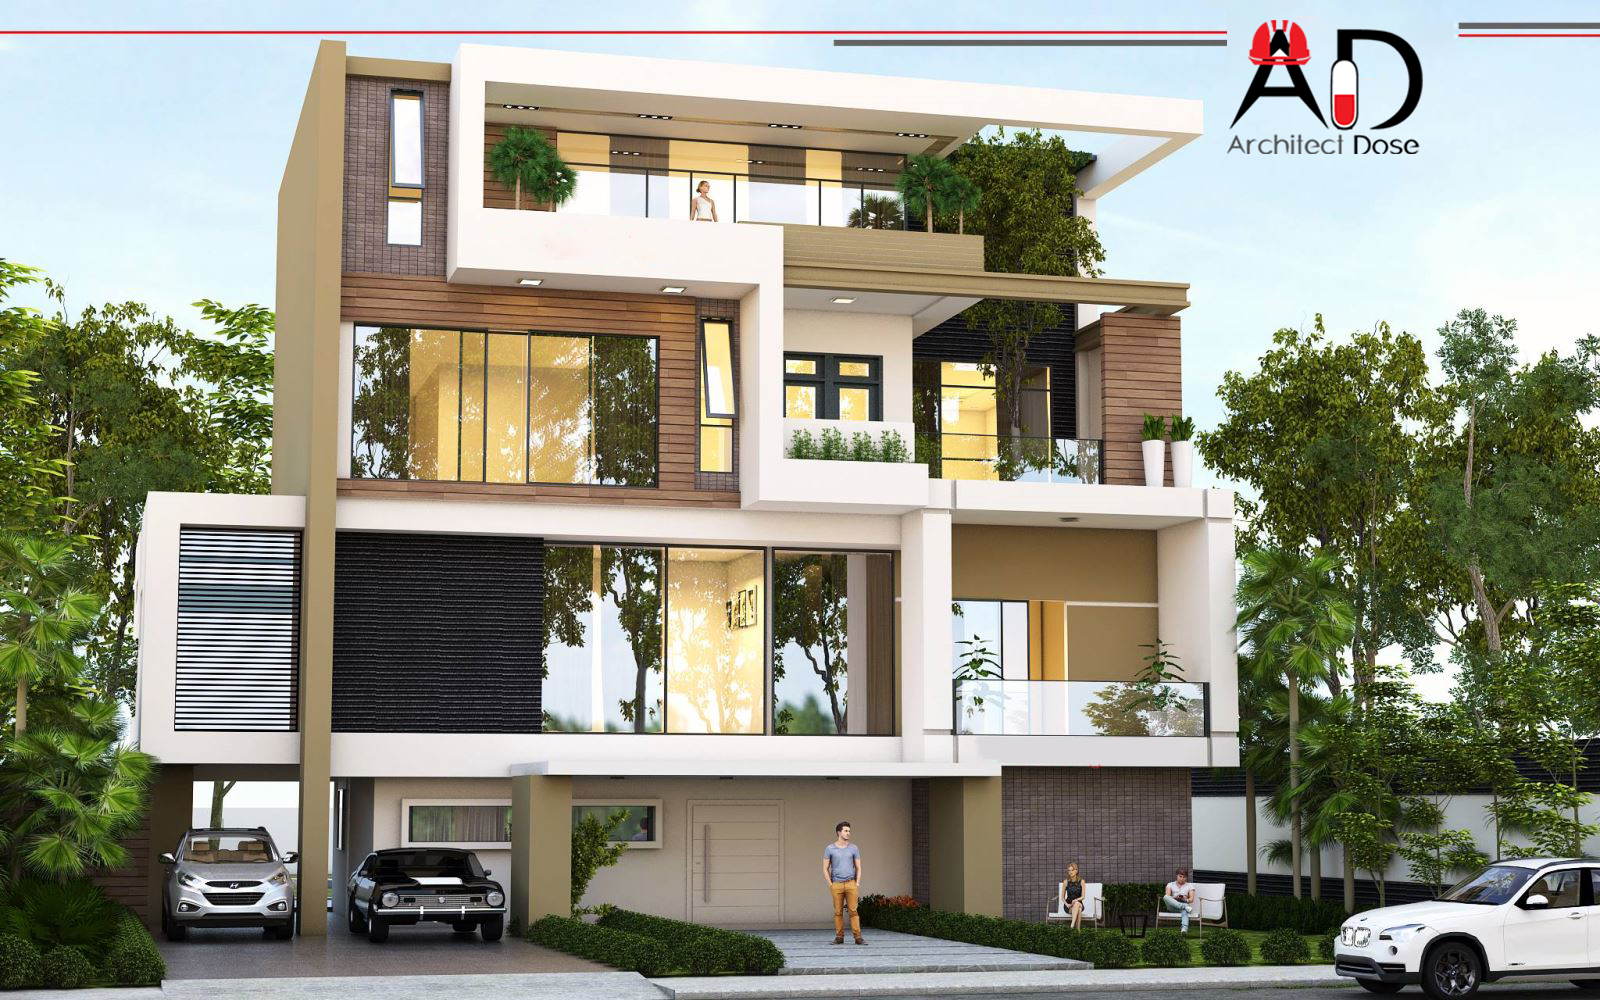 Architect dose architecture sketchup tutorials models for Contemporary model house